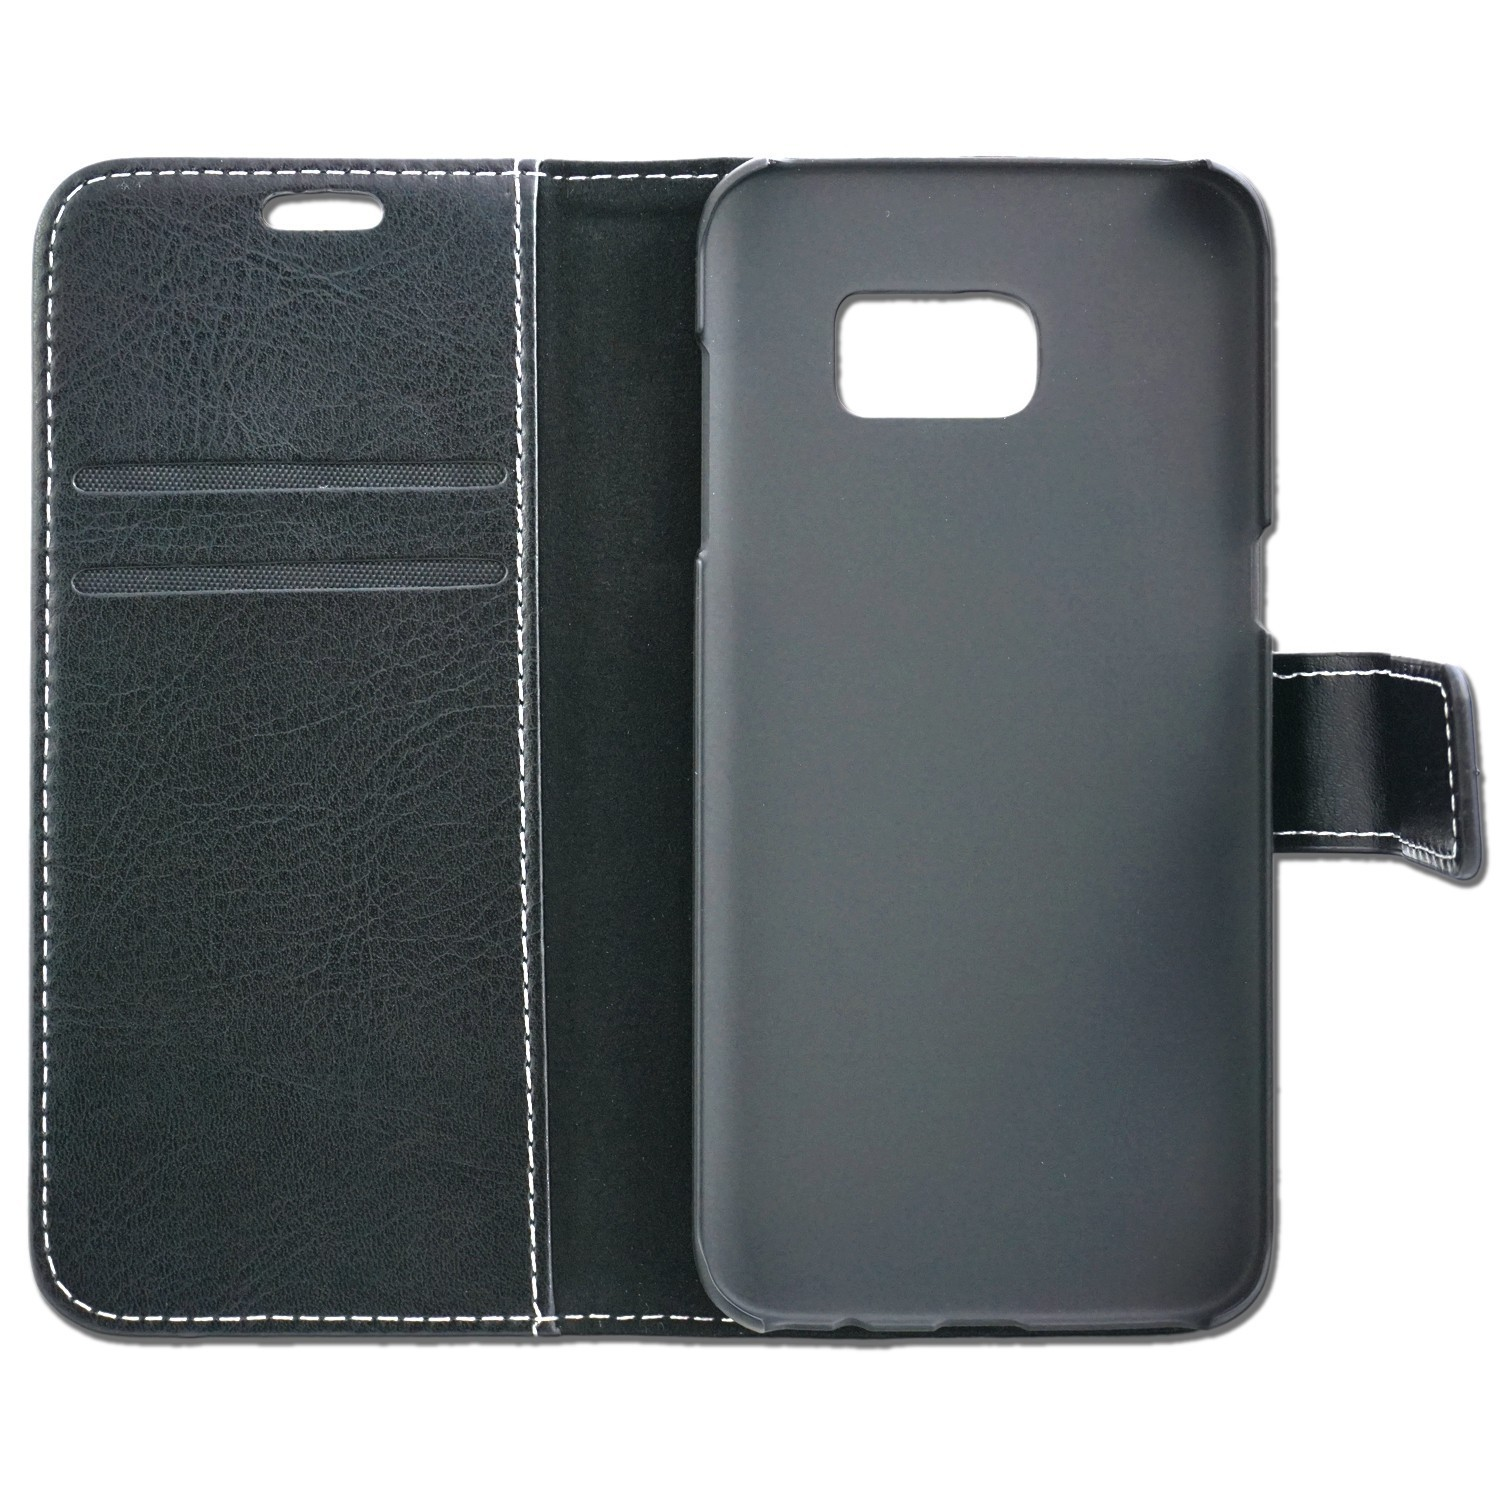 2GO book-case pour Apple iPhone 4 / 4S cuir – Bild 3